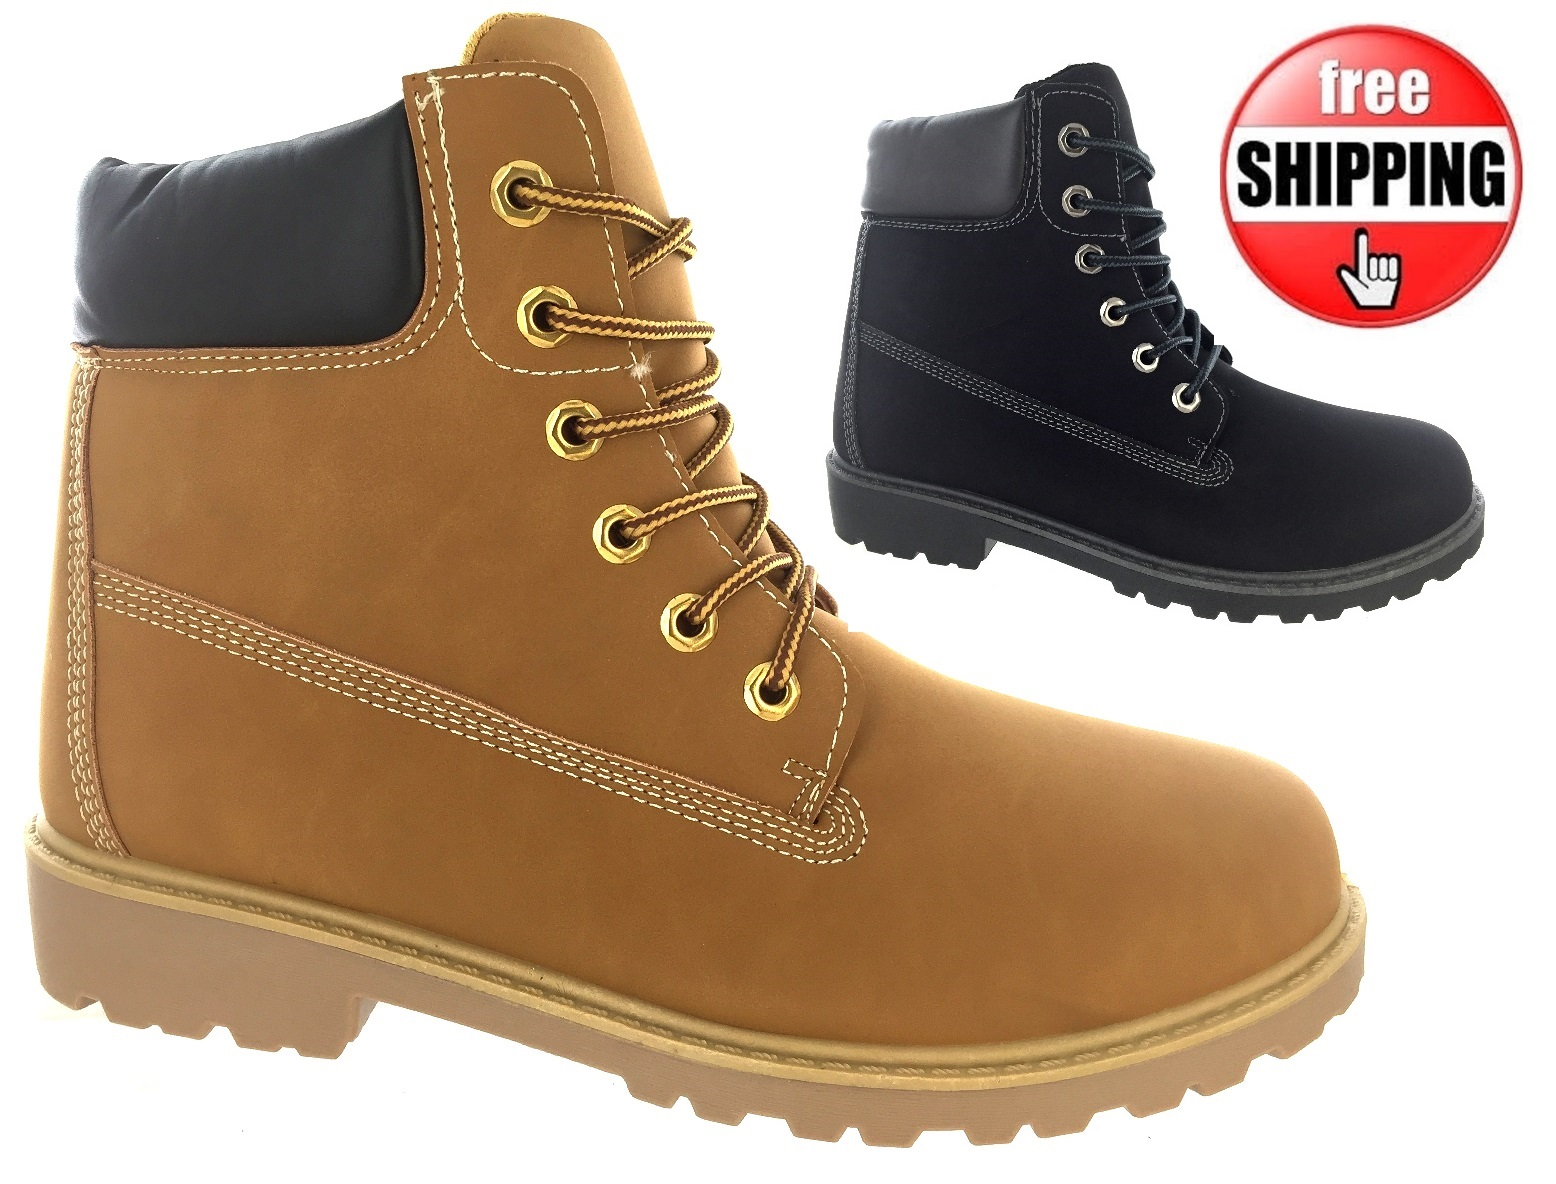 timbo men Visit our online store to see our wide range of mens boots including the firetrap timbo mens chelsea boots, don't miss out.